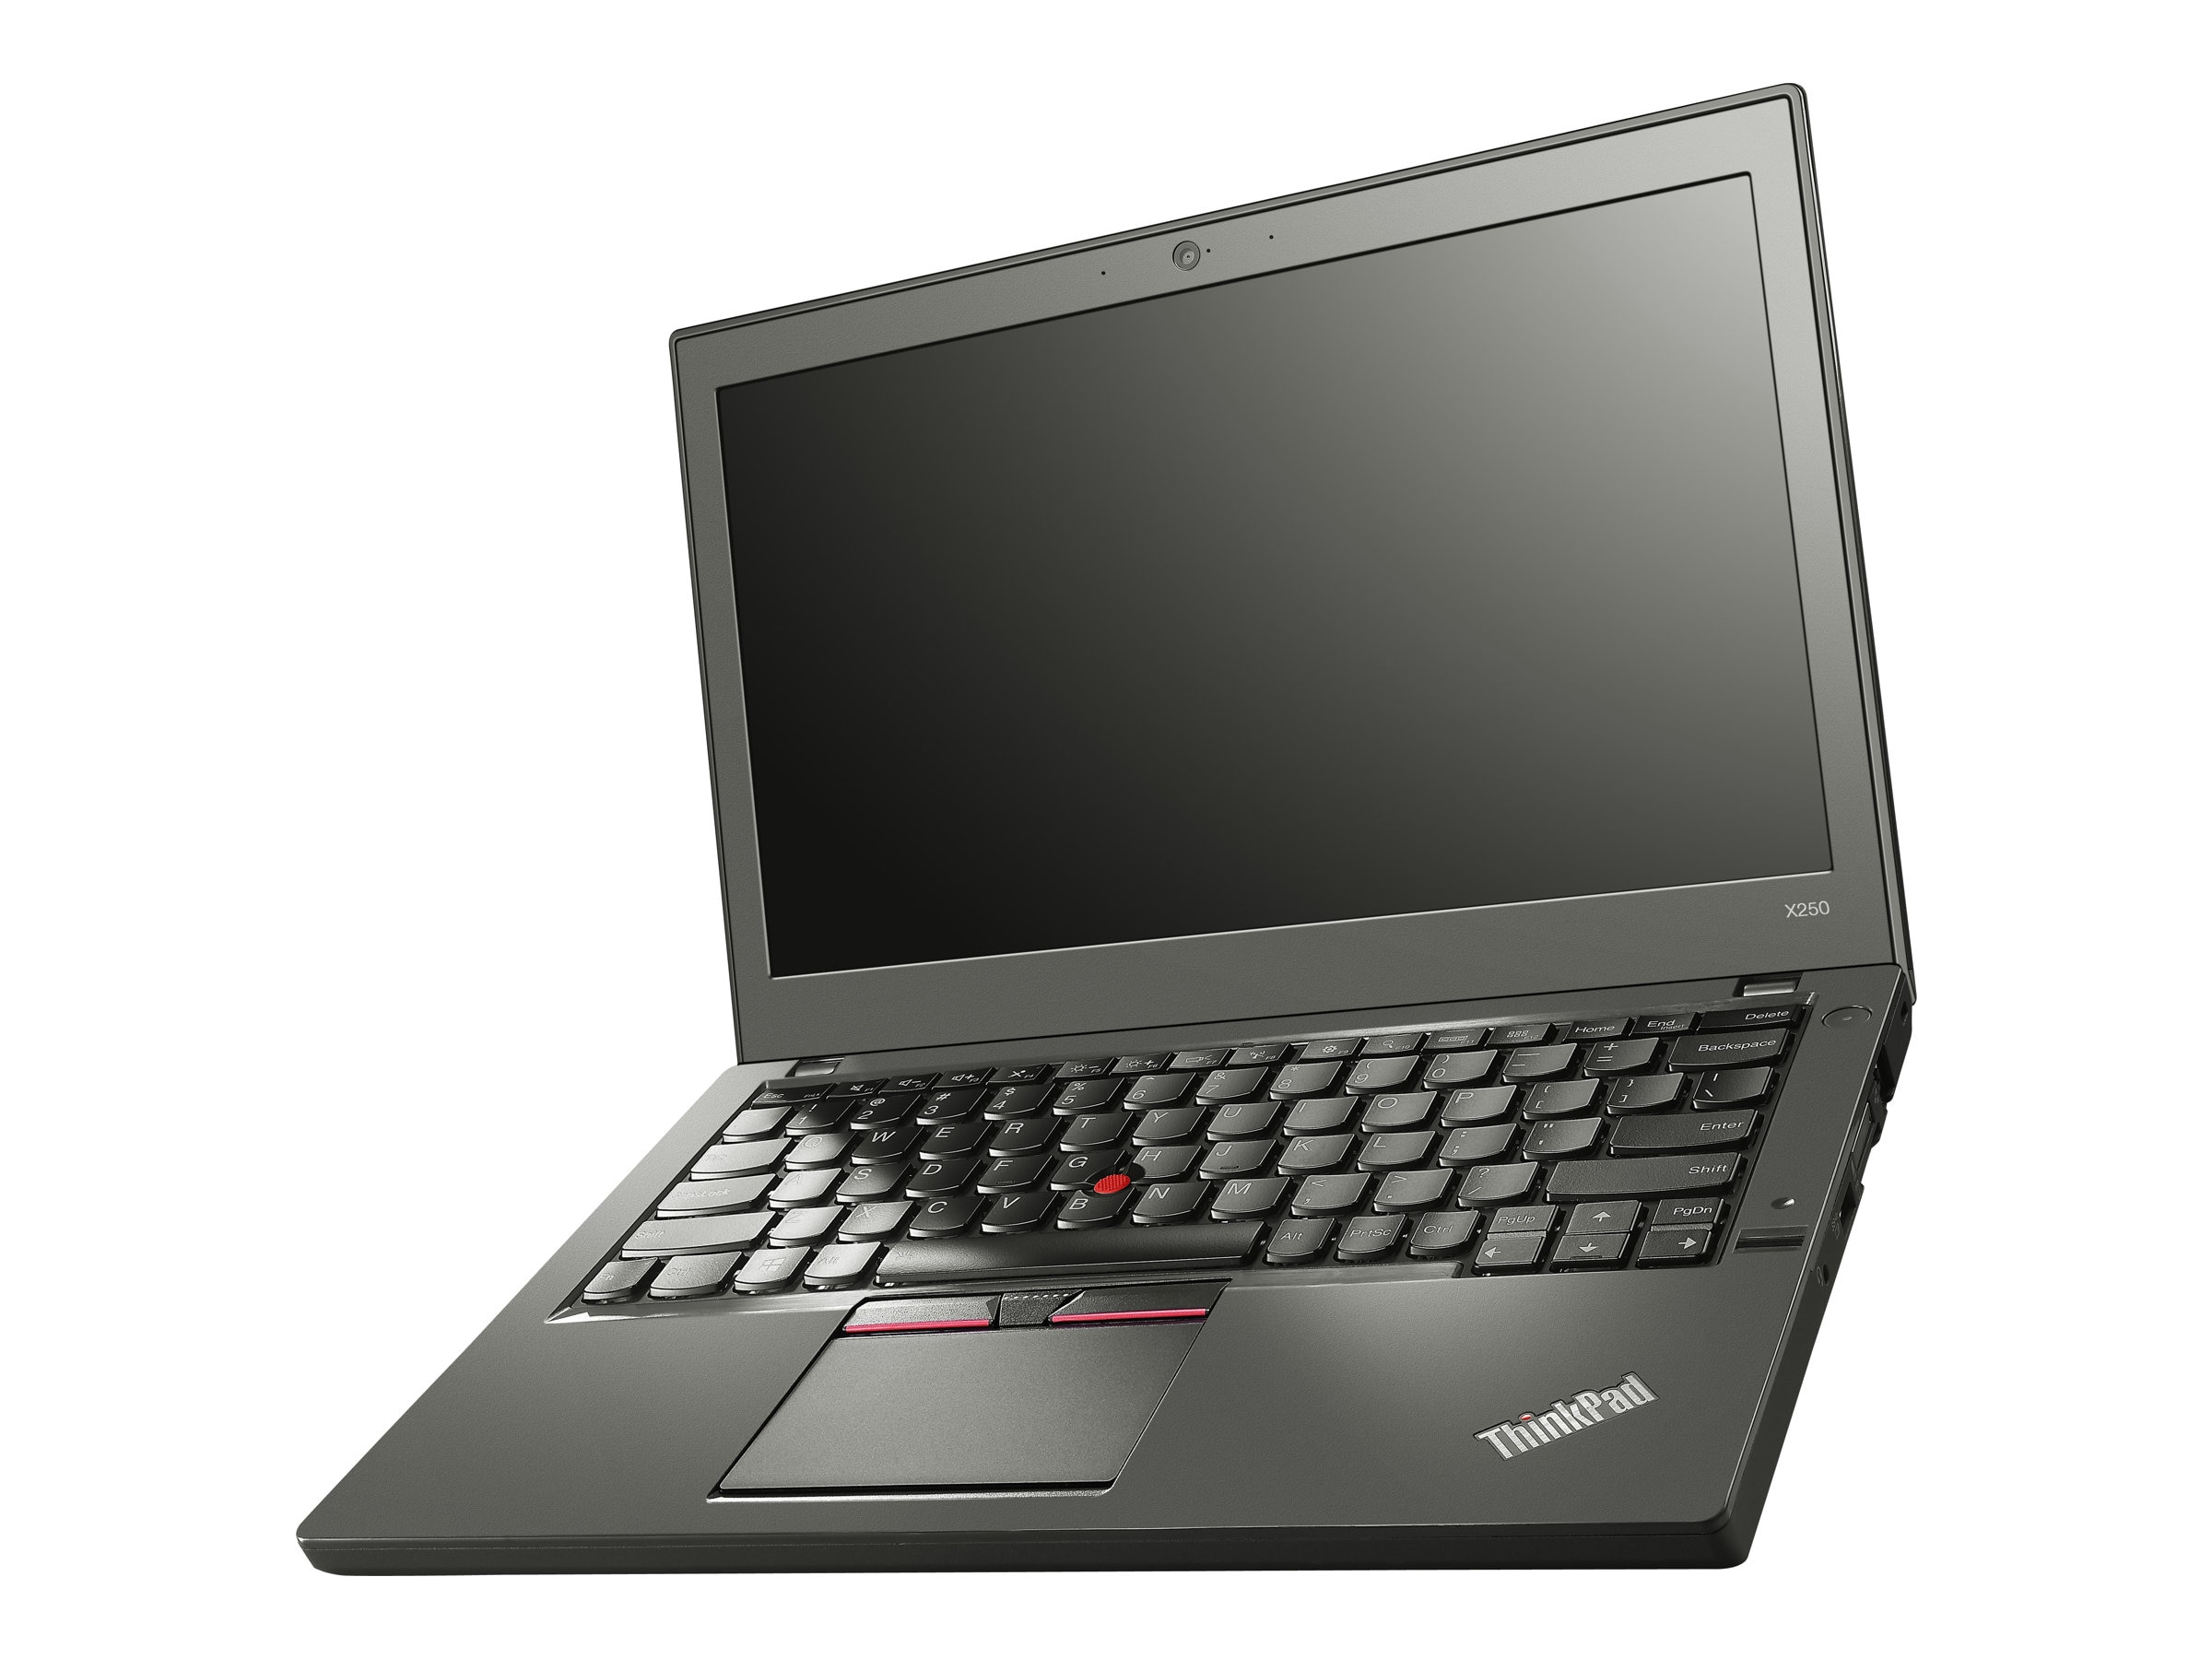 Lenovo TopSeller ThinkPad X250 2.6GHz Core i7 12.5in display, 20CM004GUS, 20794207, Notebooks